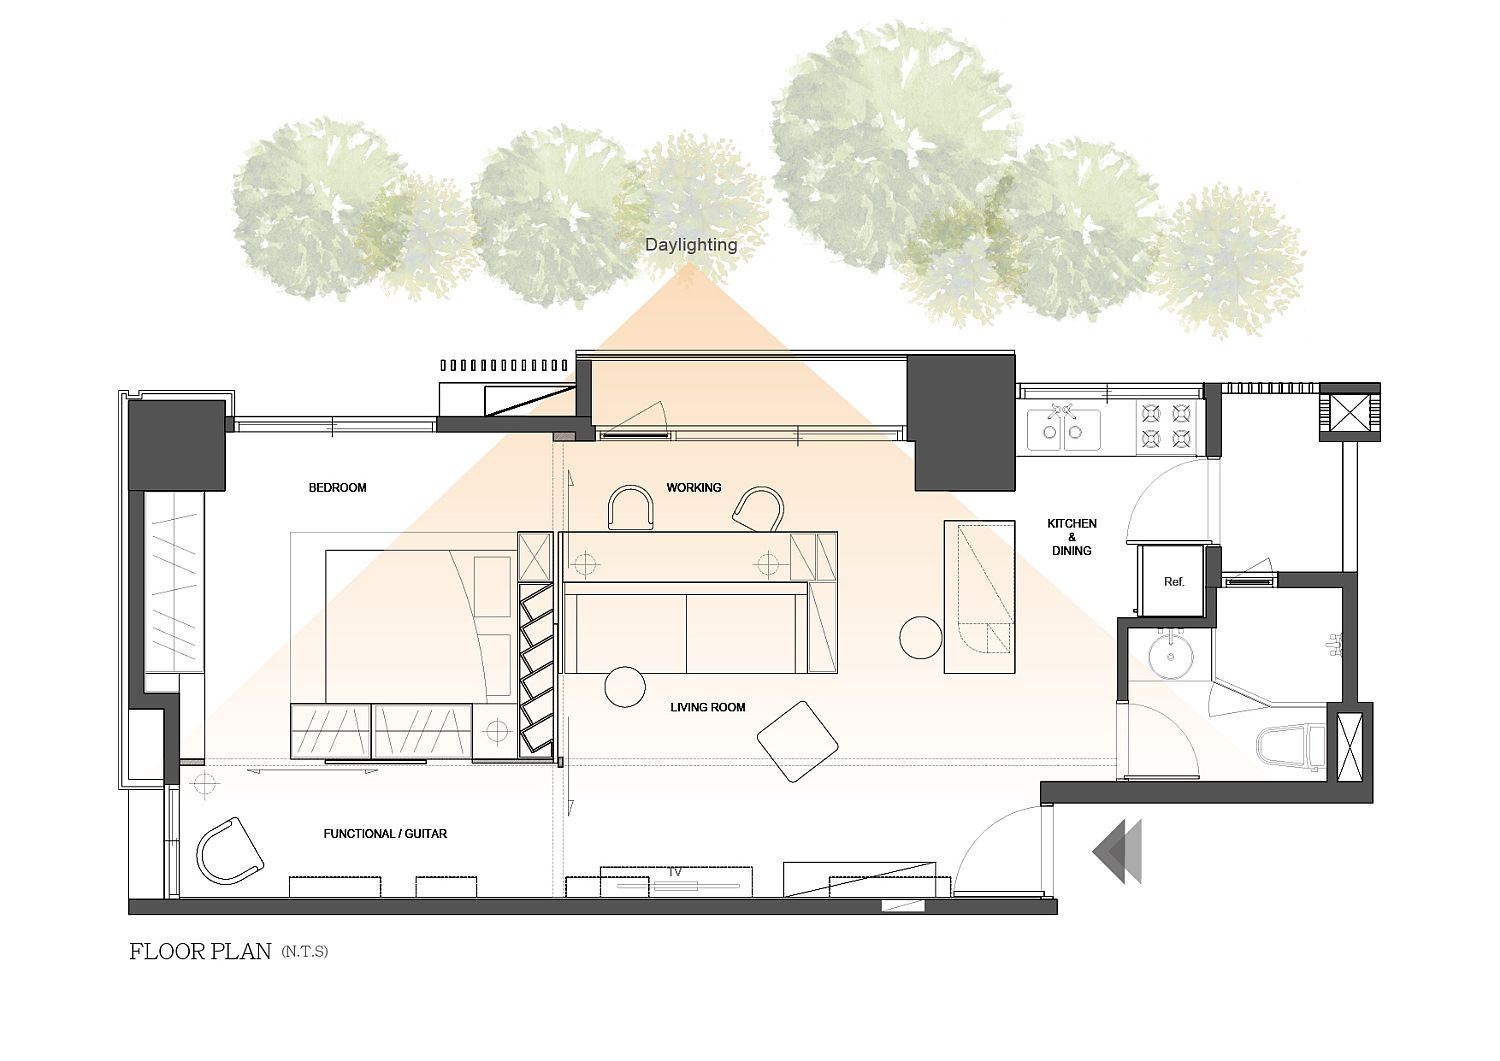 Floor plan of contemporary home in Taiwan inspired by classic Eichler homes